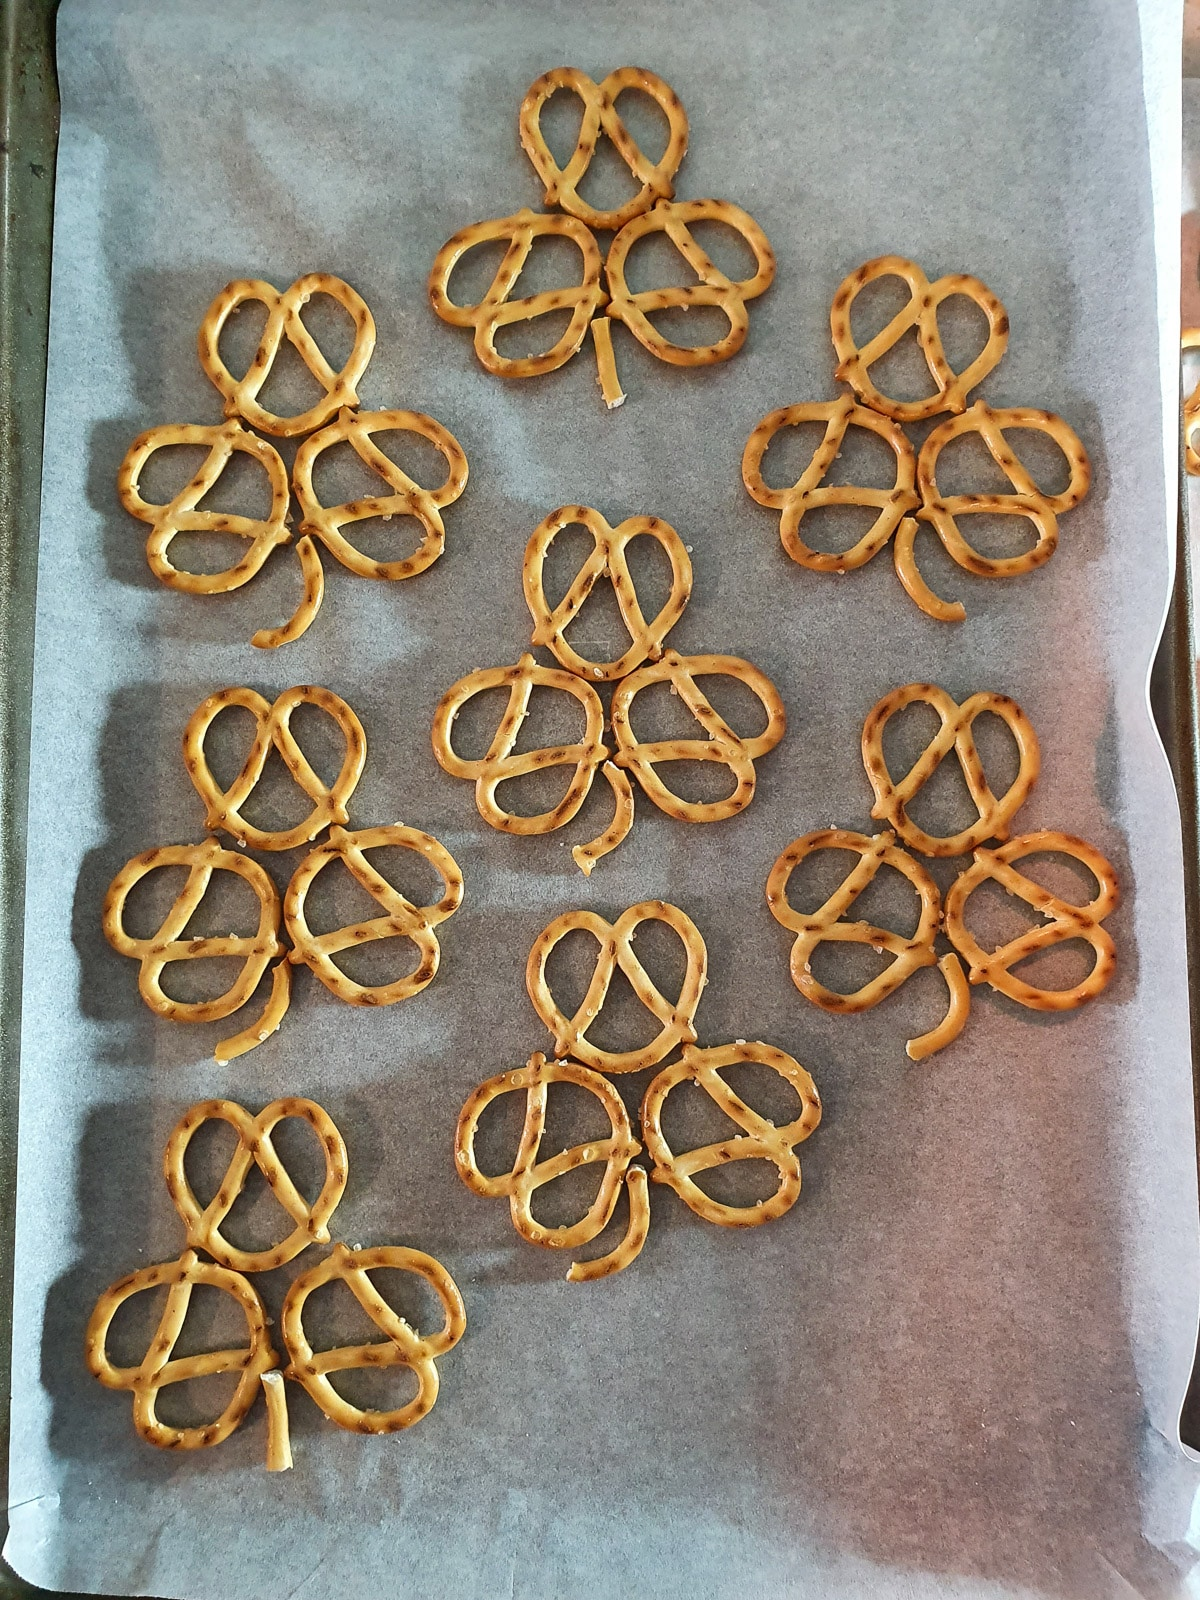 Uncoated pretzels laid out on baking tray ready to dip in chocolate